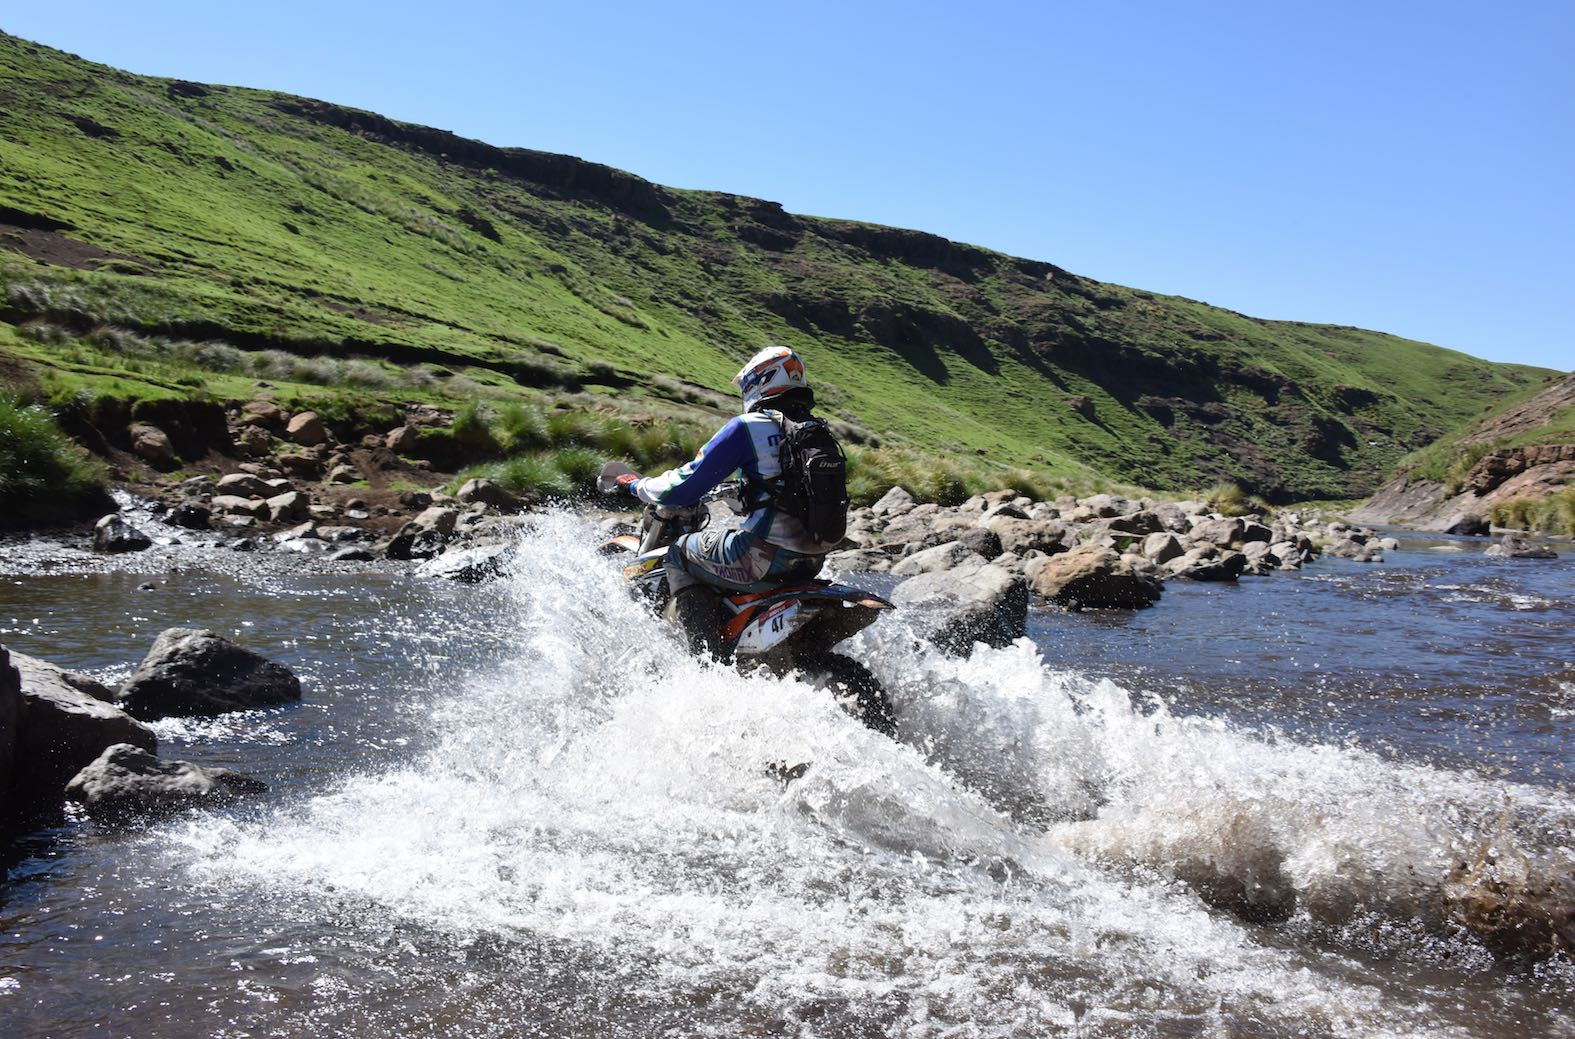 Rivers crossing at the Motul Roof of Africa extreme enduro event